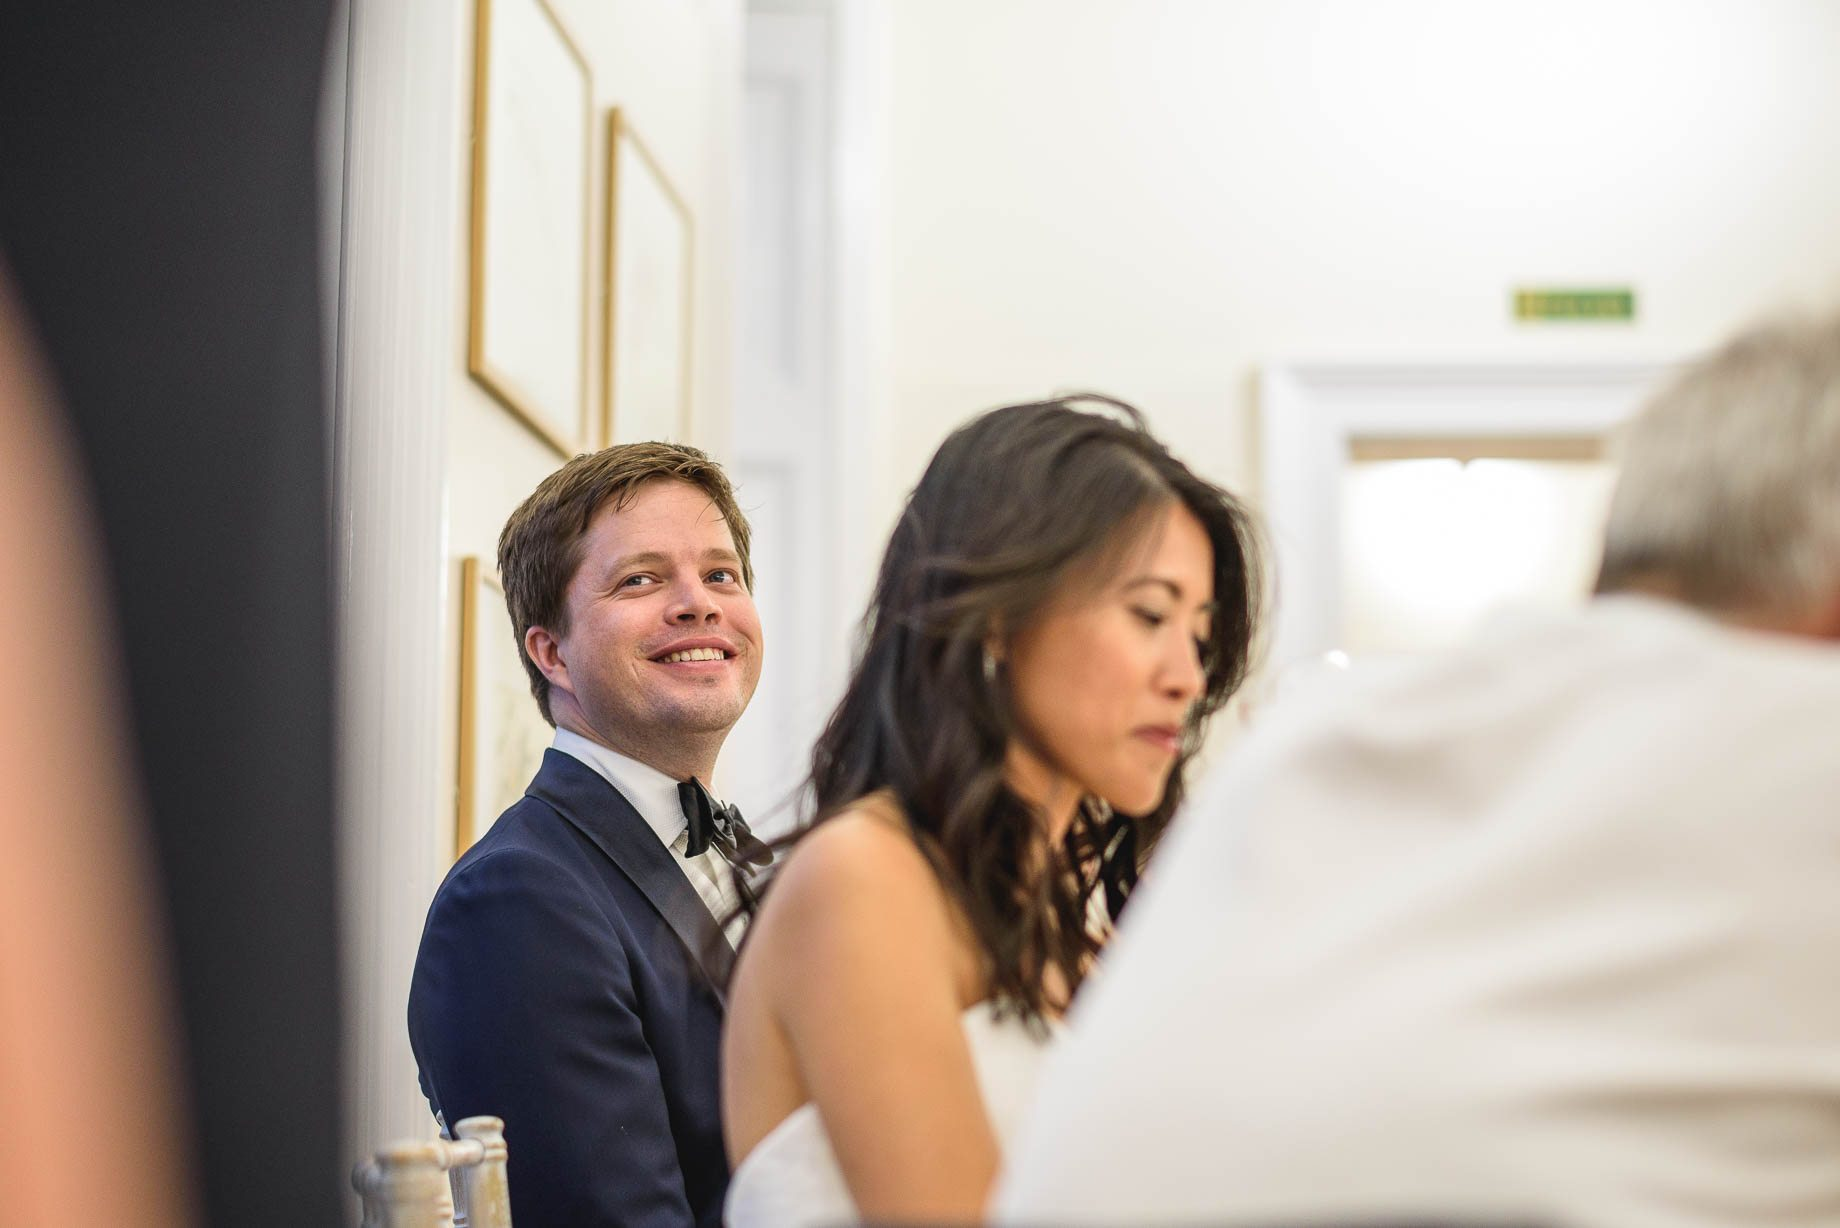 Kew Gardens wedding photography - Guy Collier Photography - Gloria and Frederik (137 of 173)